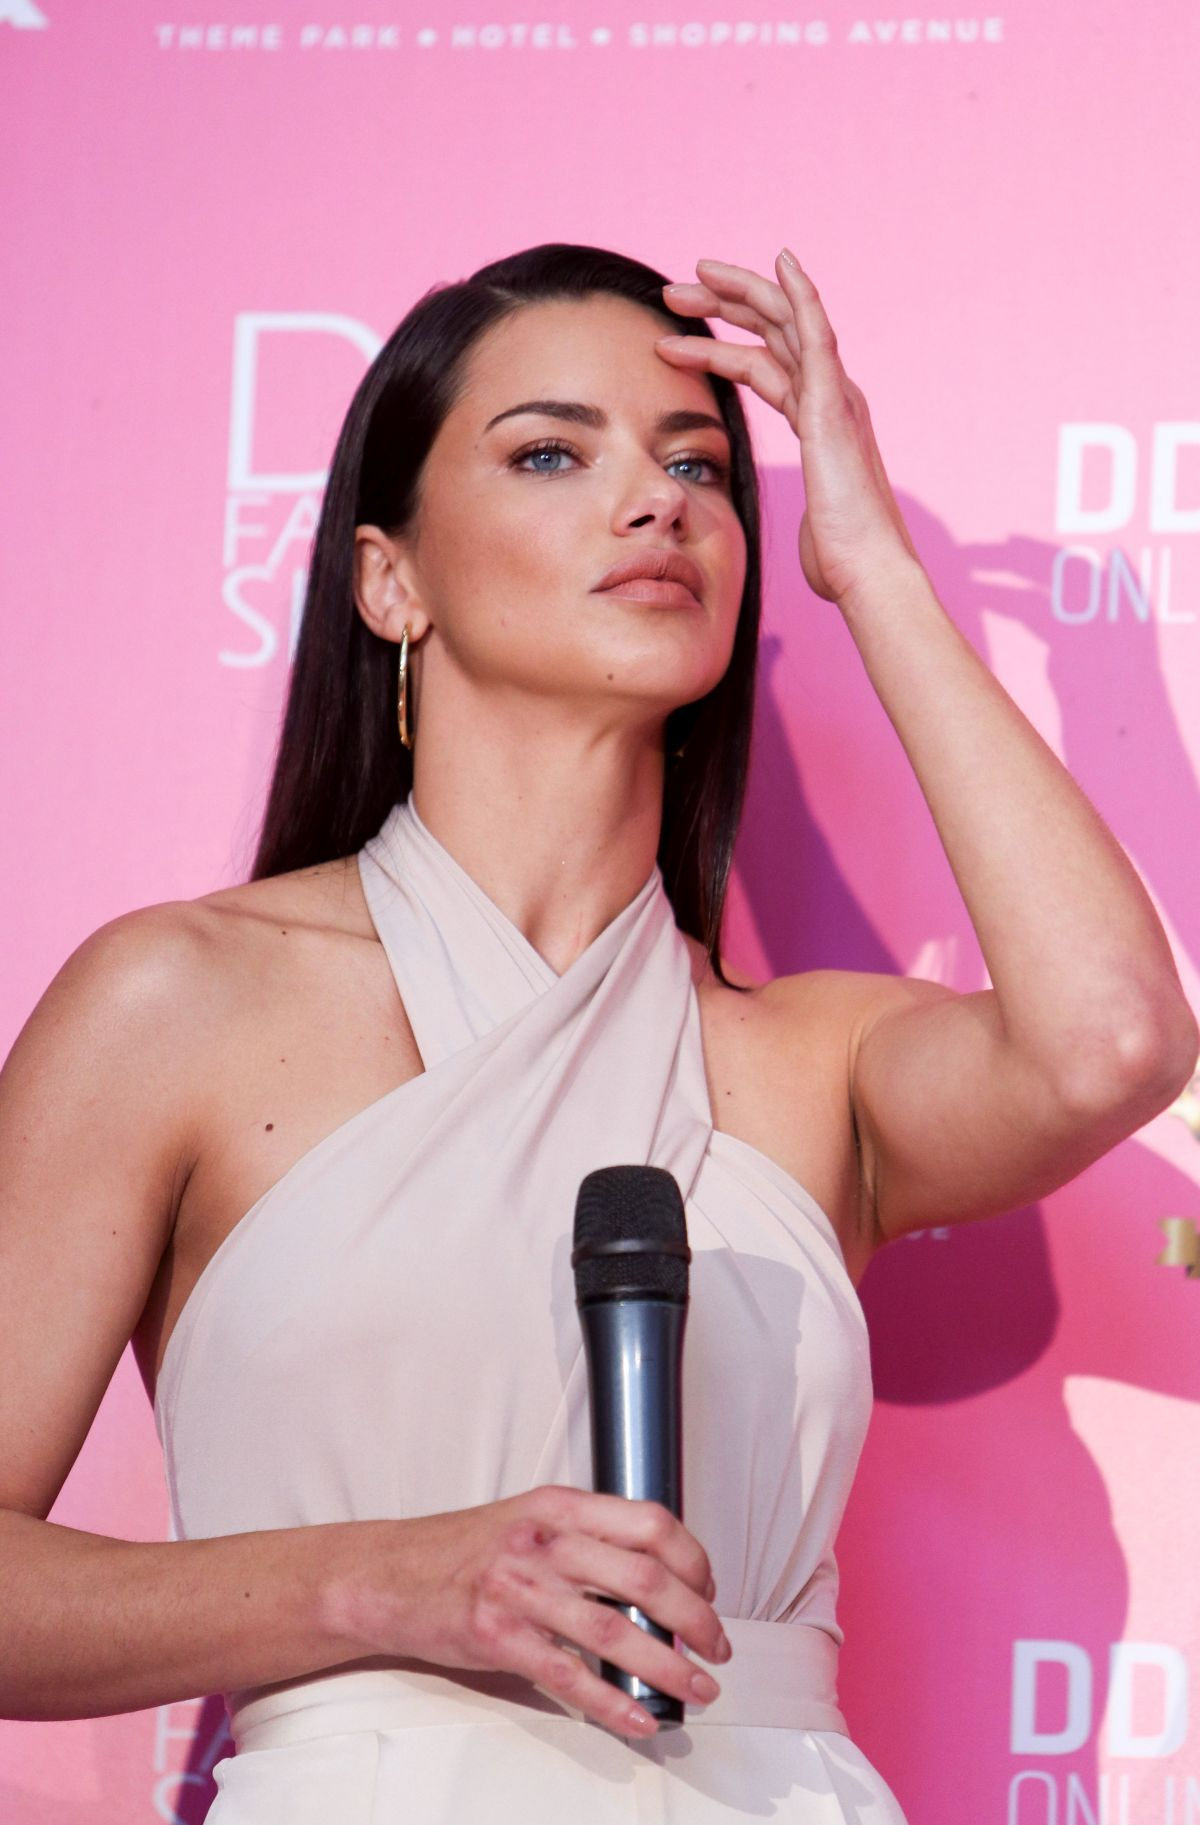 ADRIANA LIMA at Dosso Dossi Fashion Show in Antaly 06/09/2017